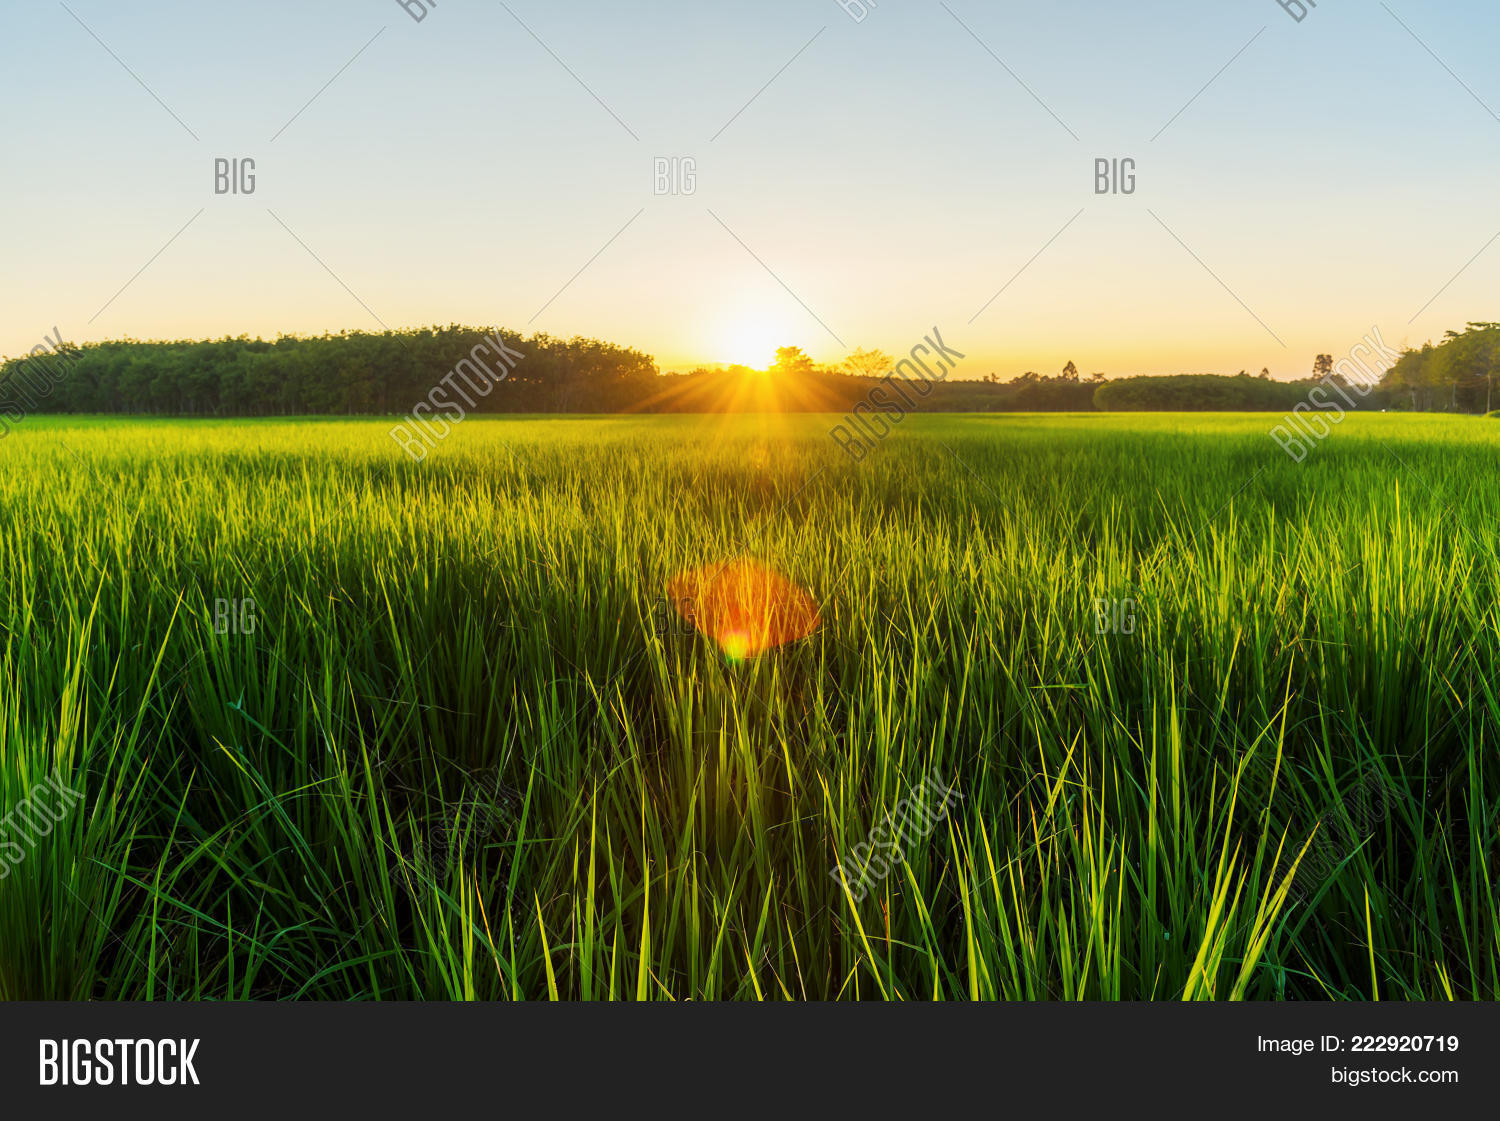 Rice field with fog powerpoint template rice field with fog your text toneelgroepblik Image collections